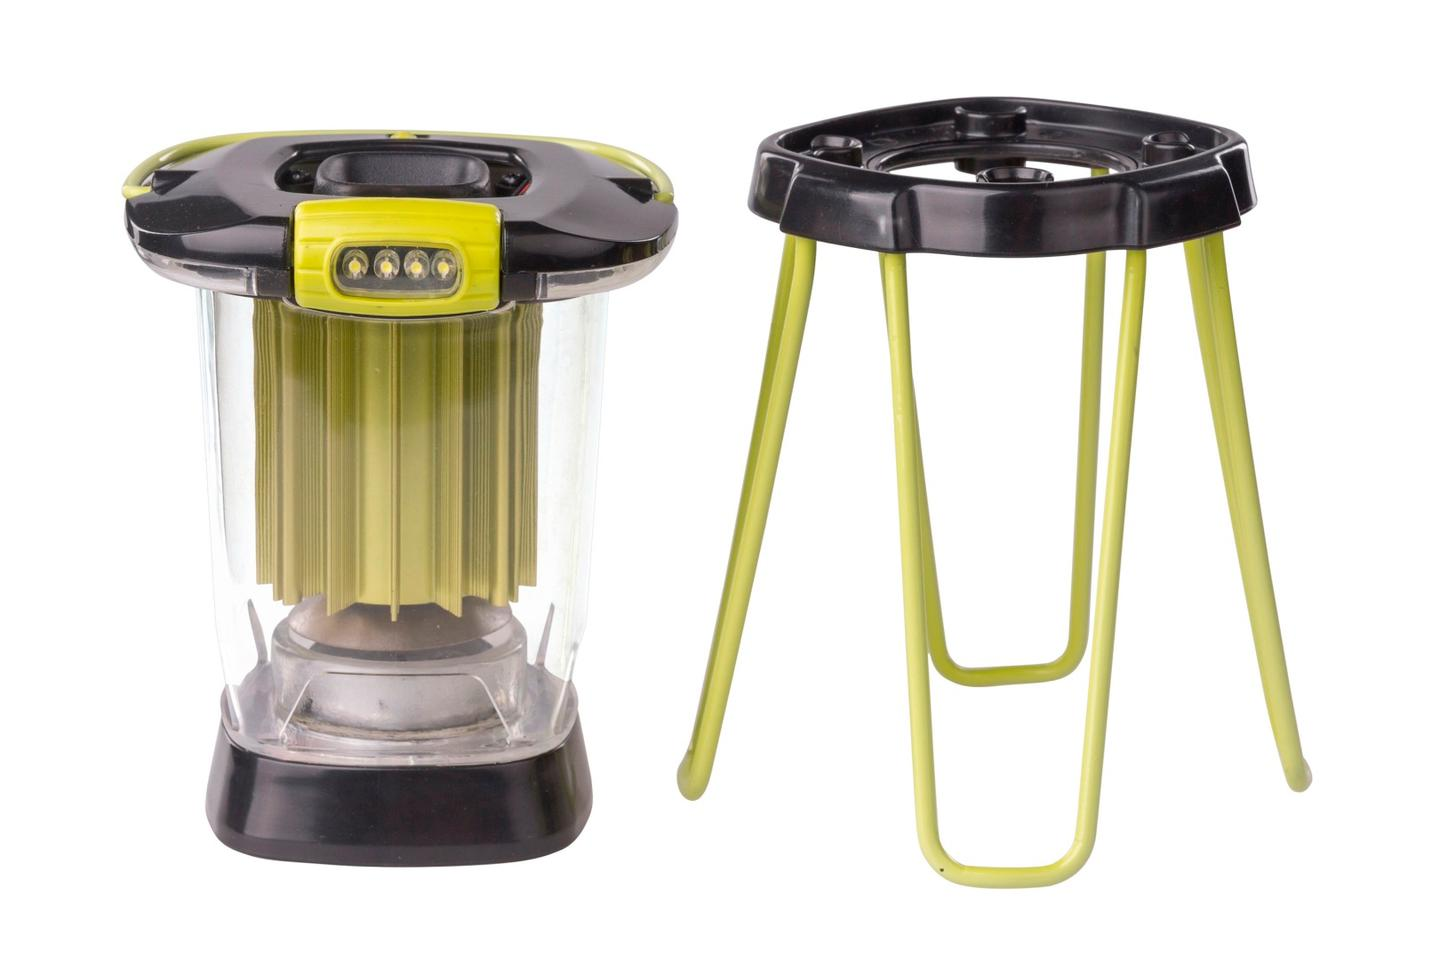 Throughthermoelectrics, the Luminiser Lantern uses heat from a candle to power its LEDs